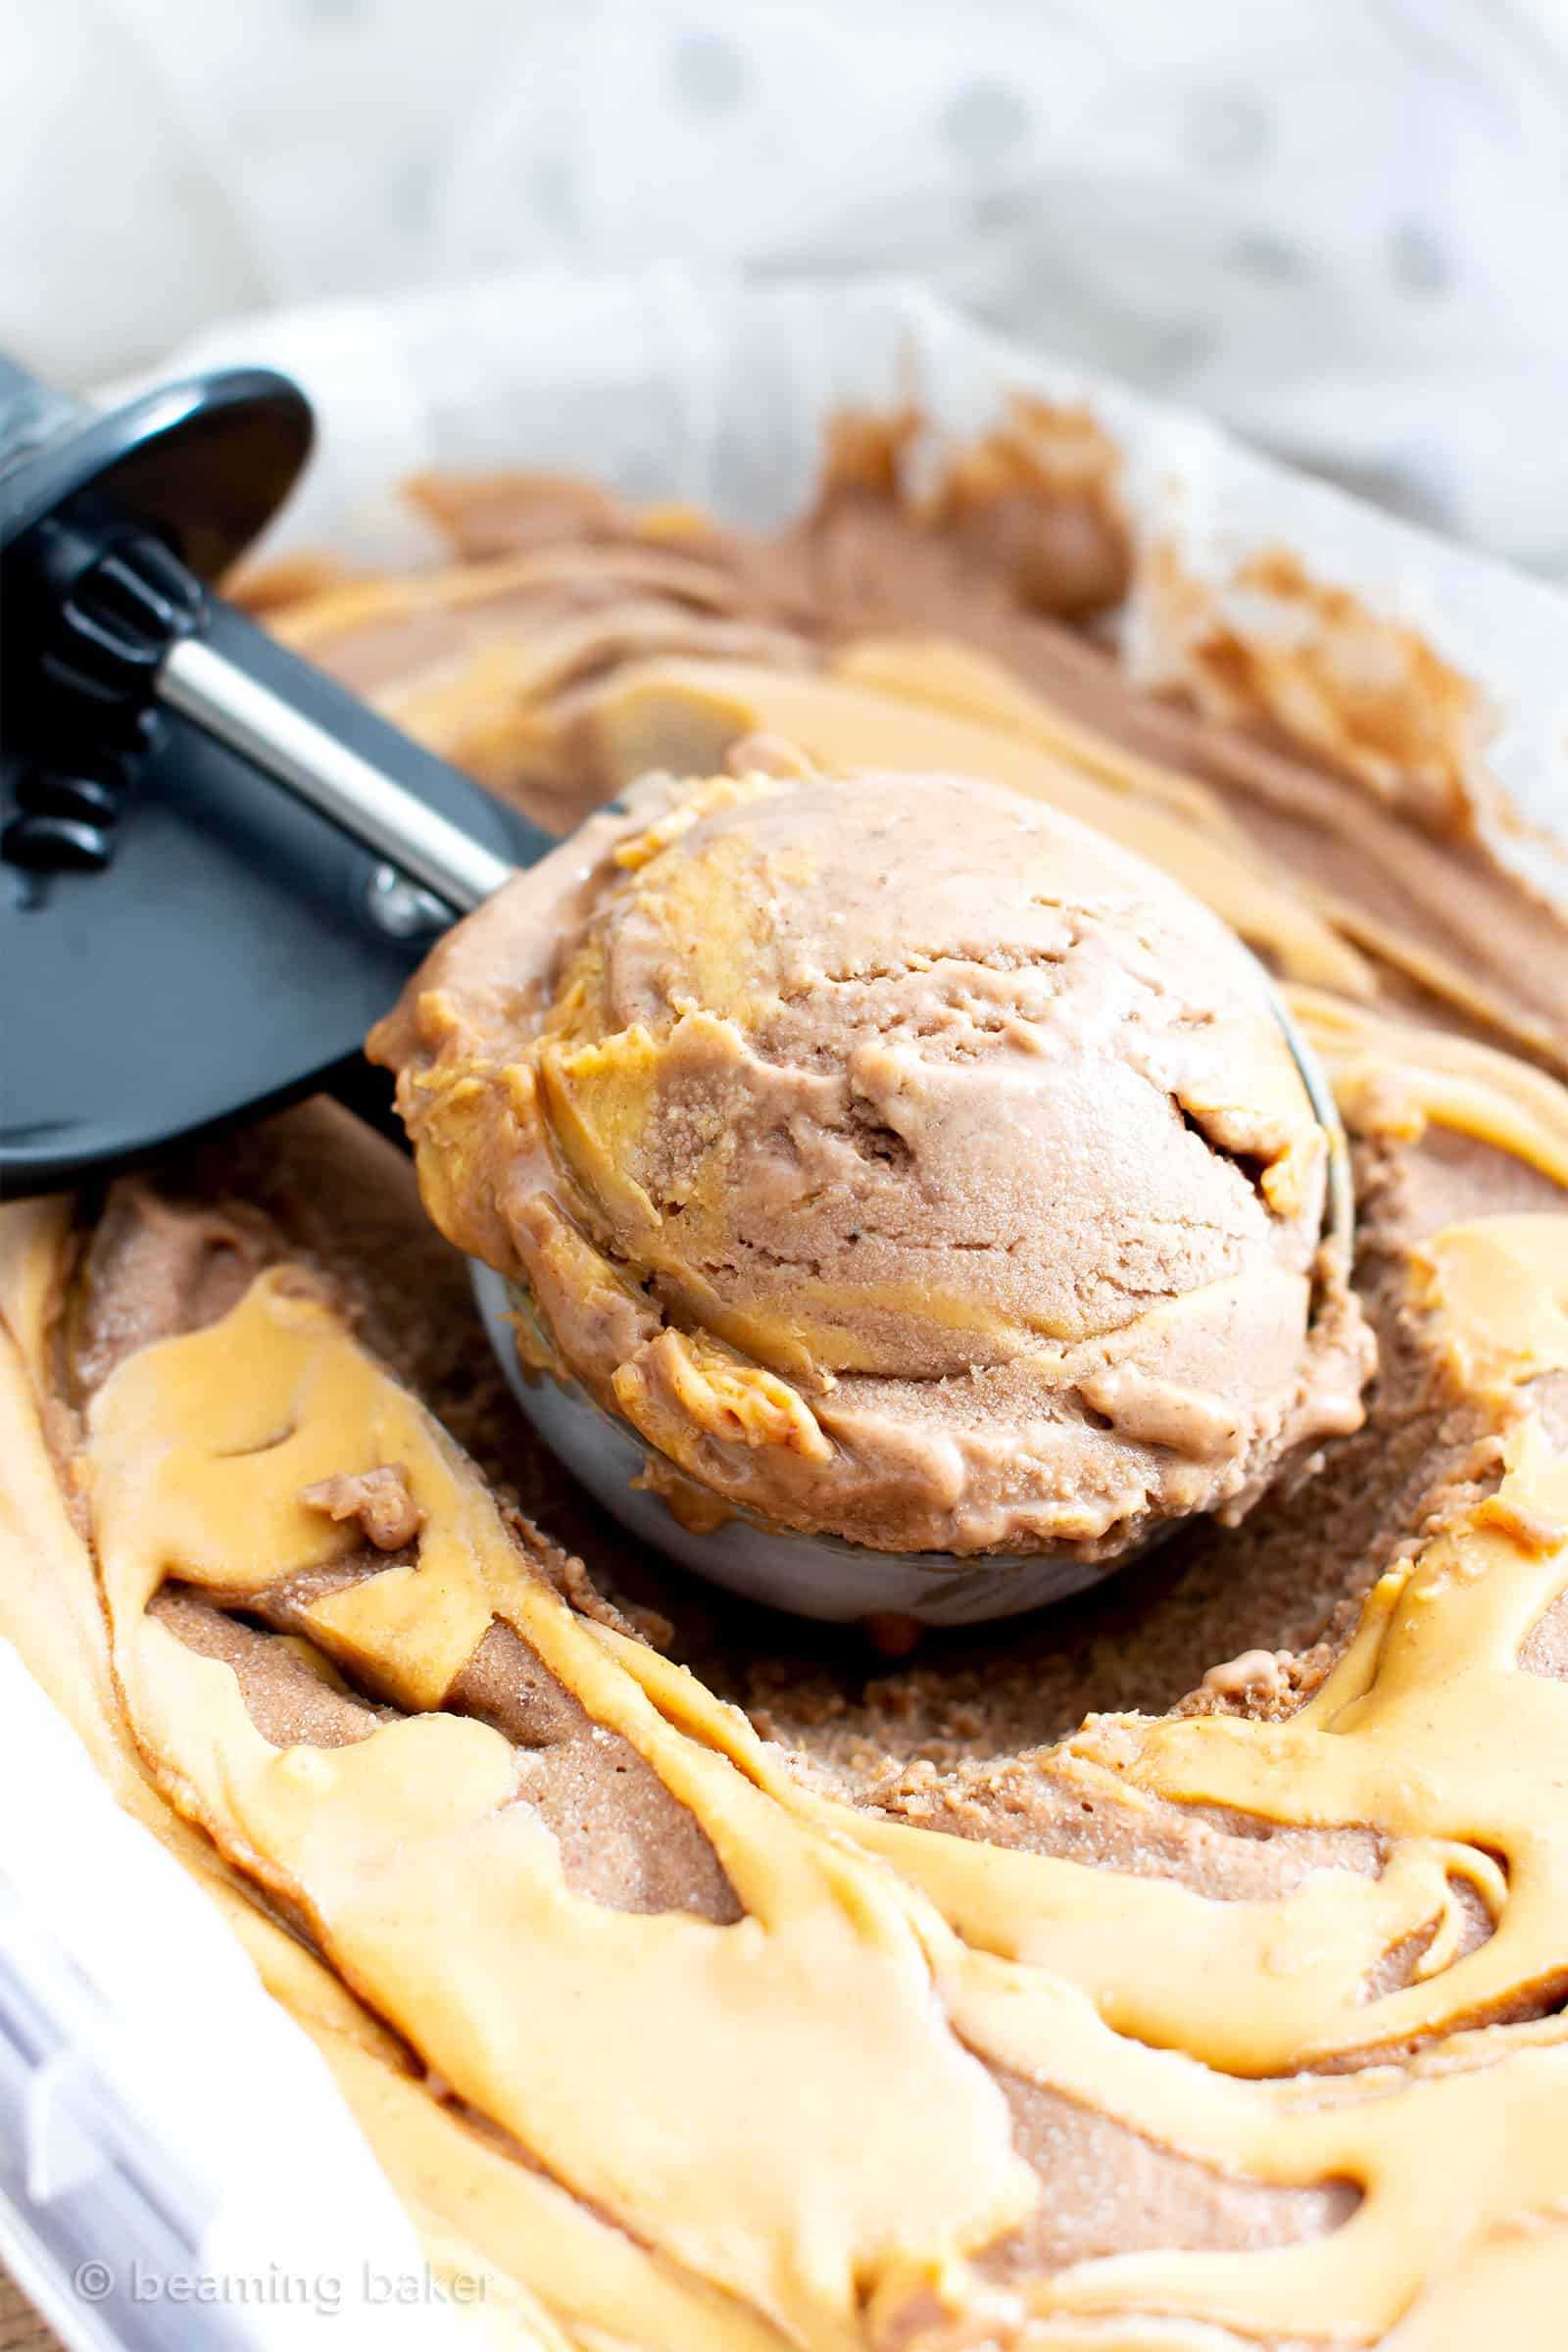 Healthy No Sugar Added Chocolate Peanut Butter Ice Cream (V, DF): a super easy, 5-ingredient recipe for the BEST deliciously creamy and chocolatey no churn peanut butter ice cream. #Vegan #DairyFree #IceCream #Paleo option #HealthyDesserts #PeanutButter #NoSugarAdded #Bananas | Recipe at BeamingBaker.com